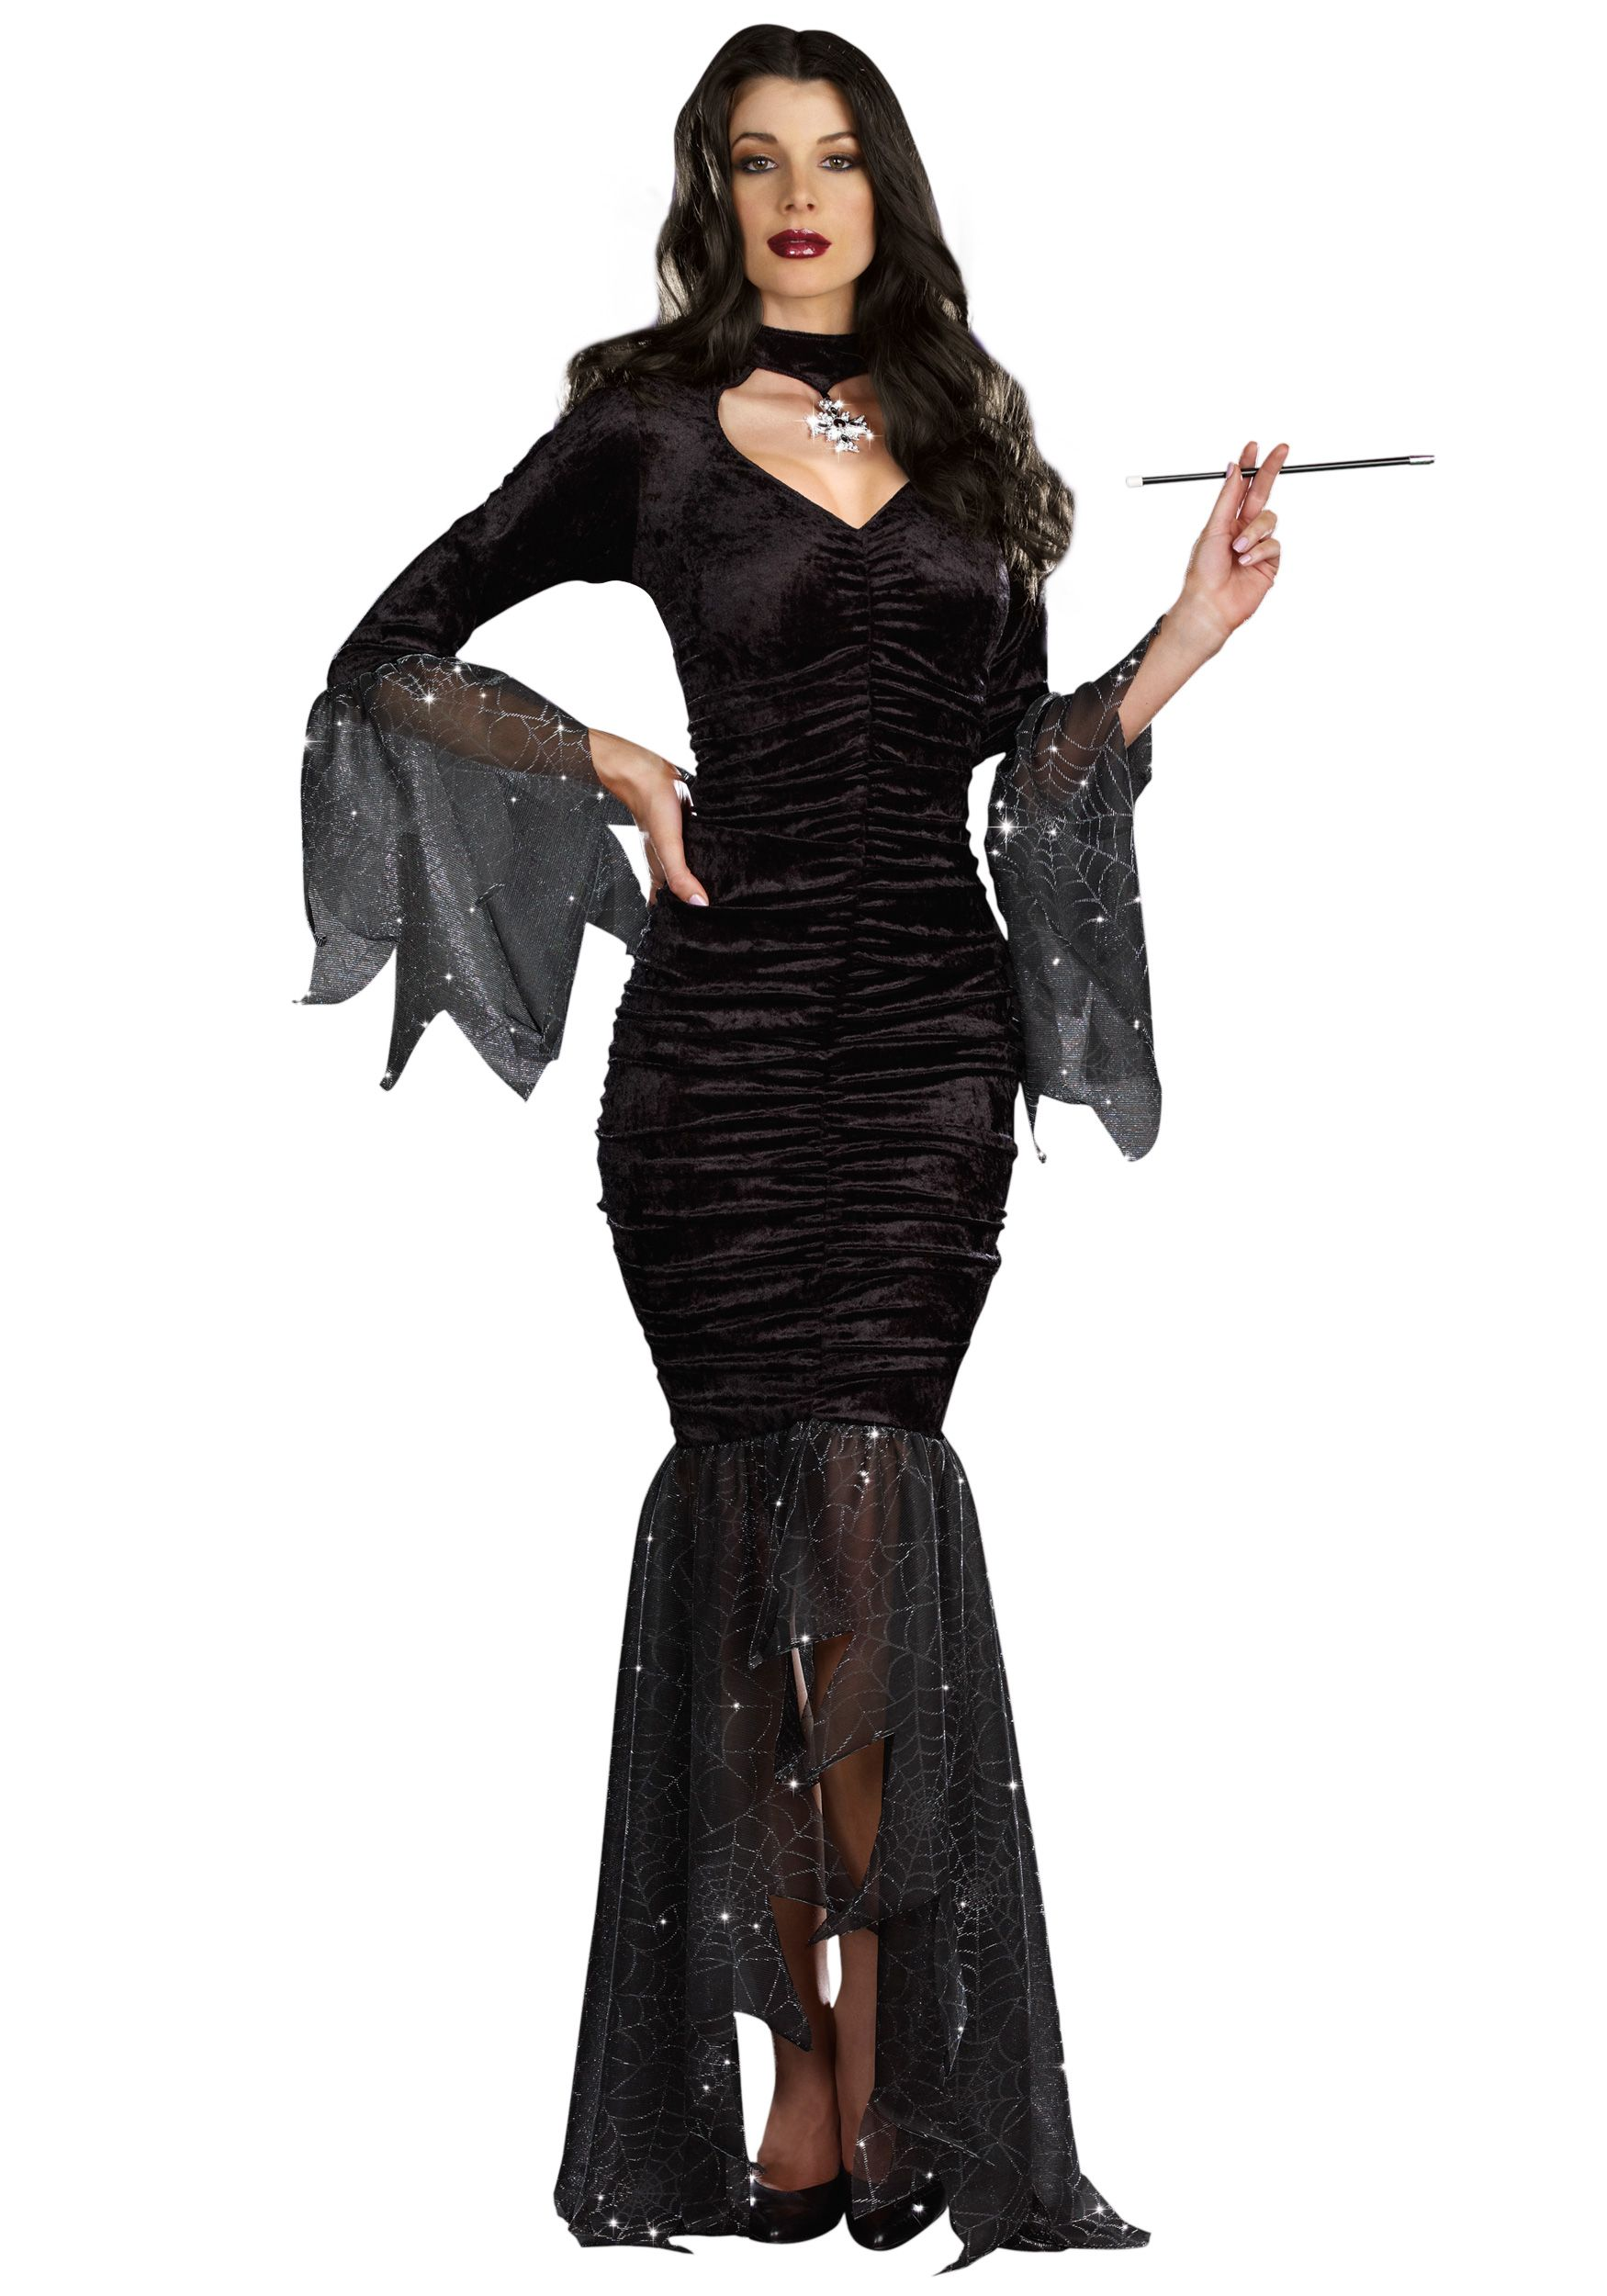 morticia adams costume | Home GROUPS ADDAMS FAMILY Adult Morticia ...